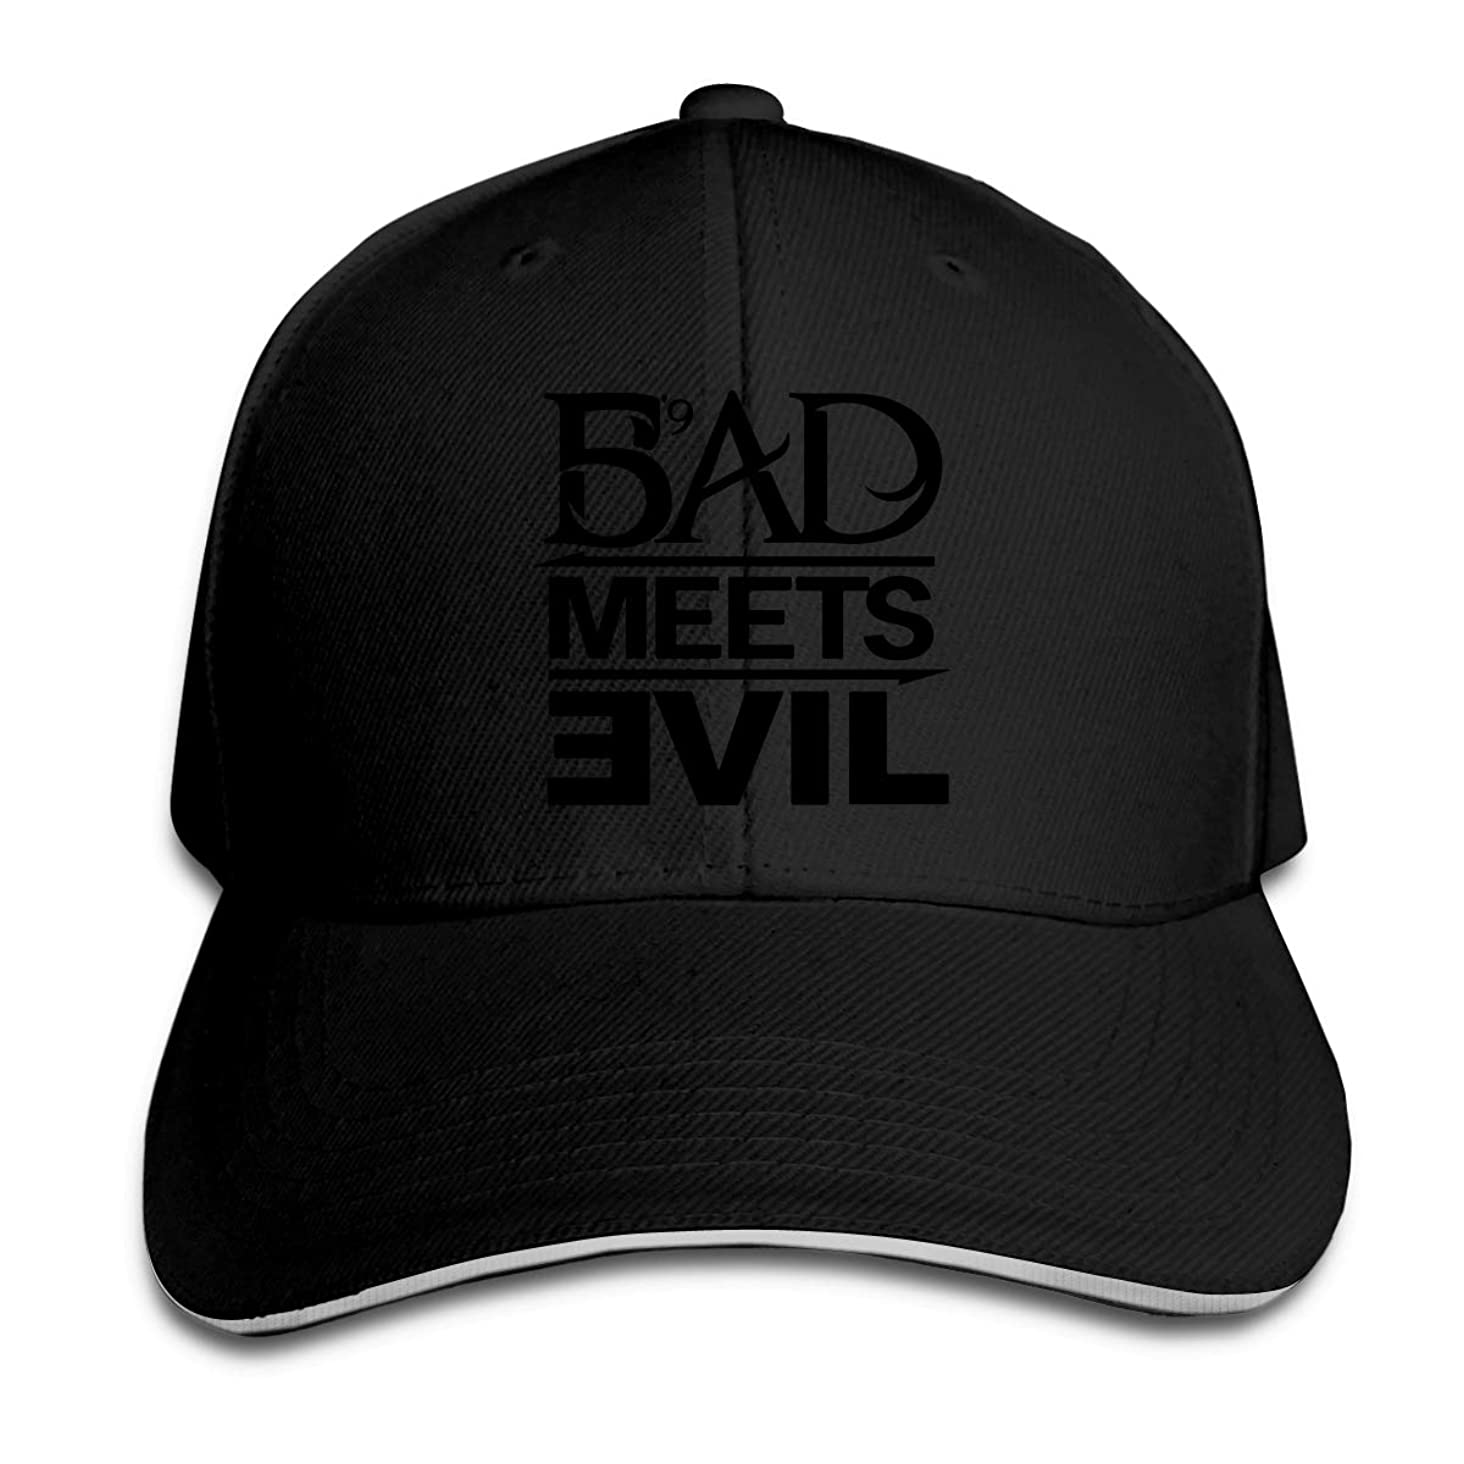 Men's and Women's Classic Bad Meets Evil Peaked Hat Cotton Golf Cap for Mens and Womens